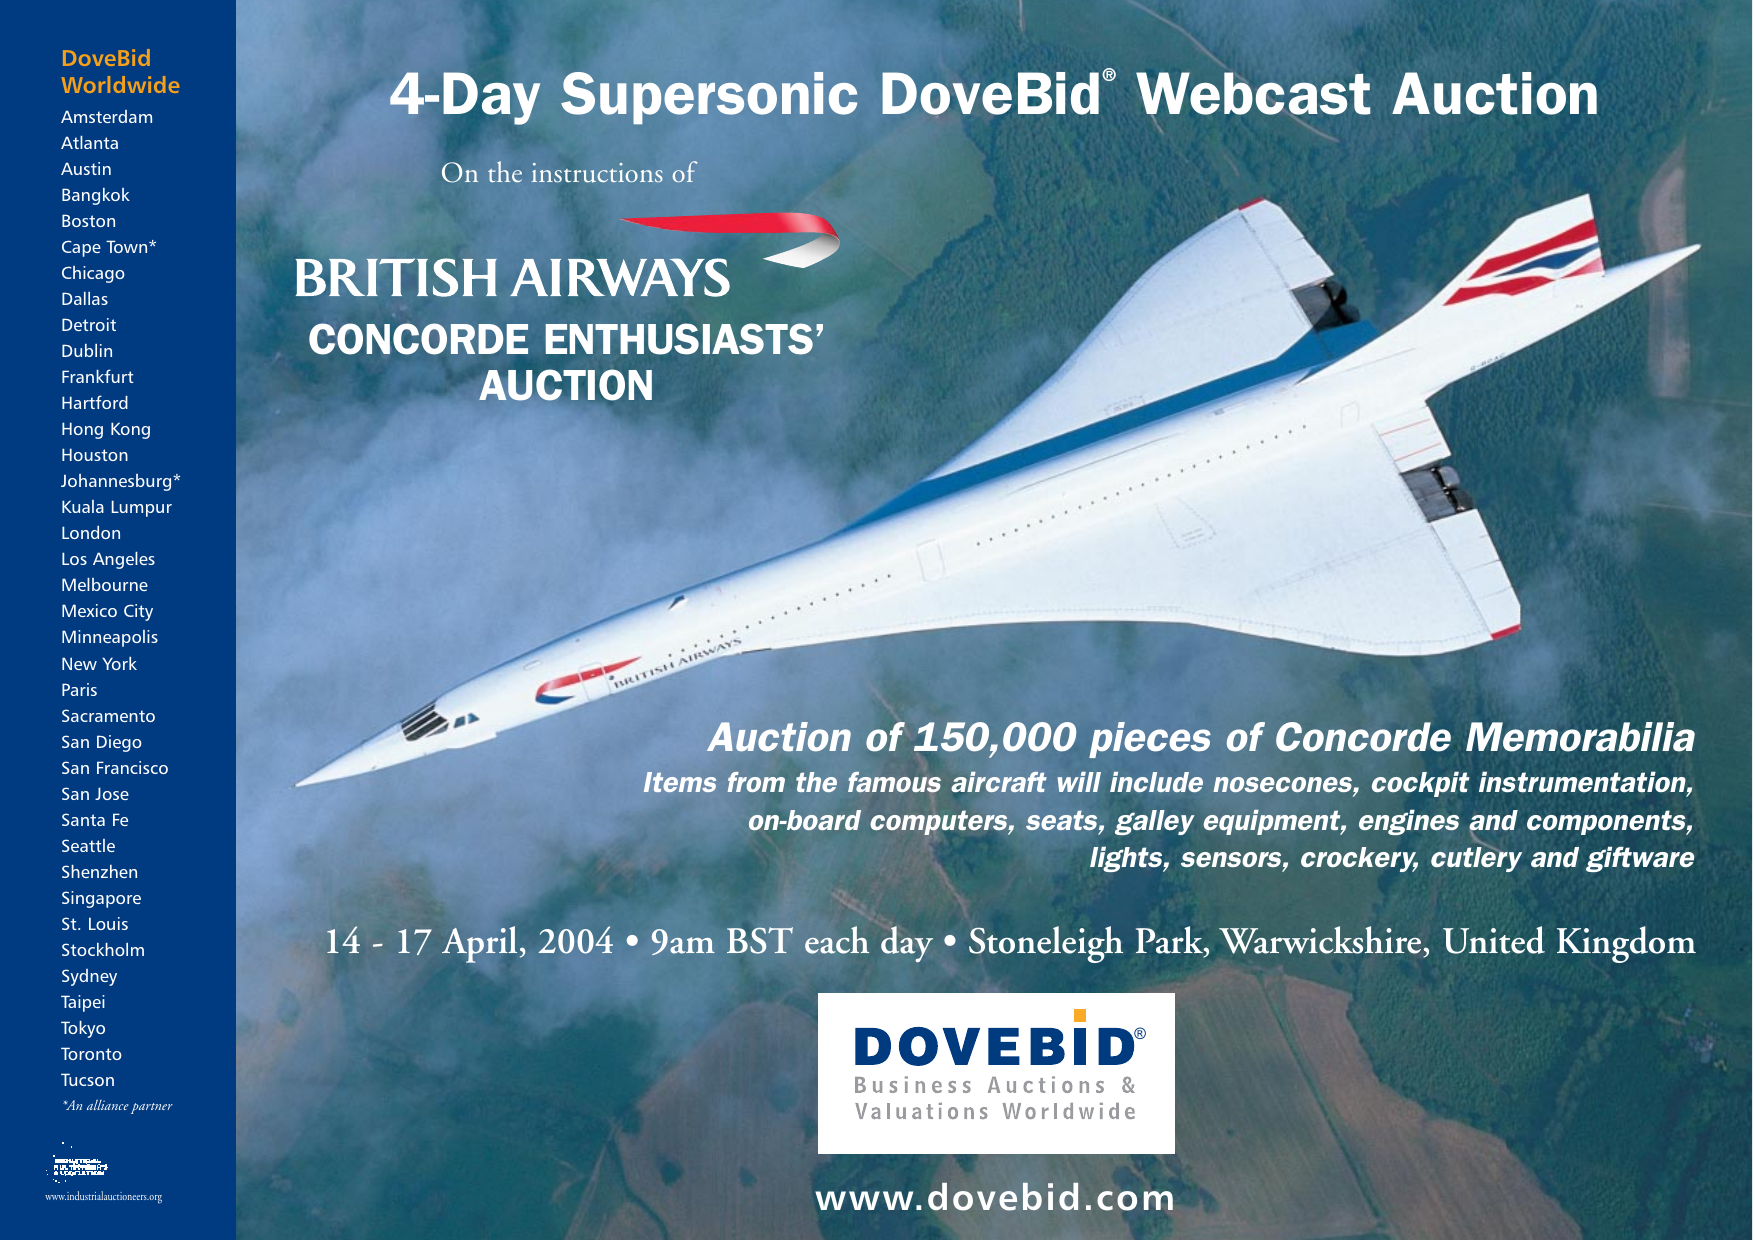 4 Day Supersonic Dovebid Webcast Auction